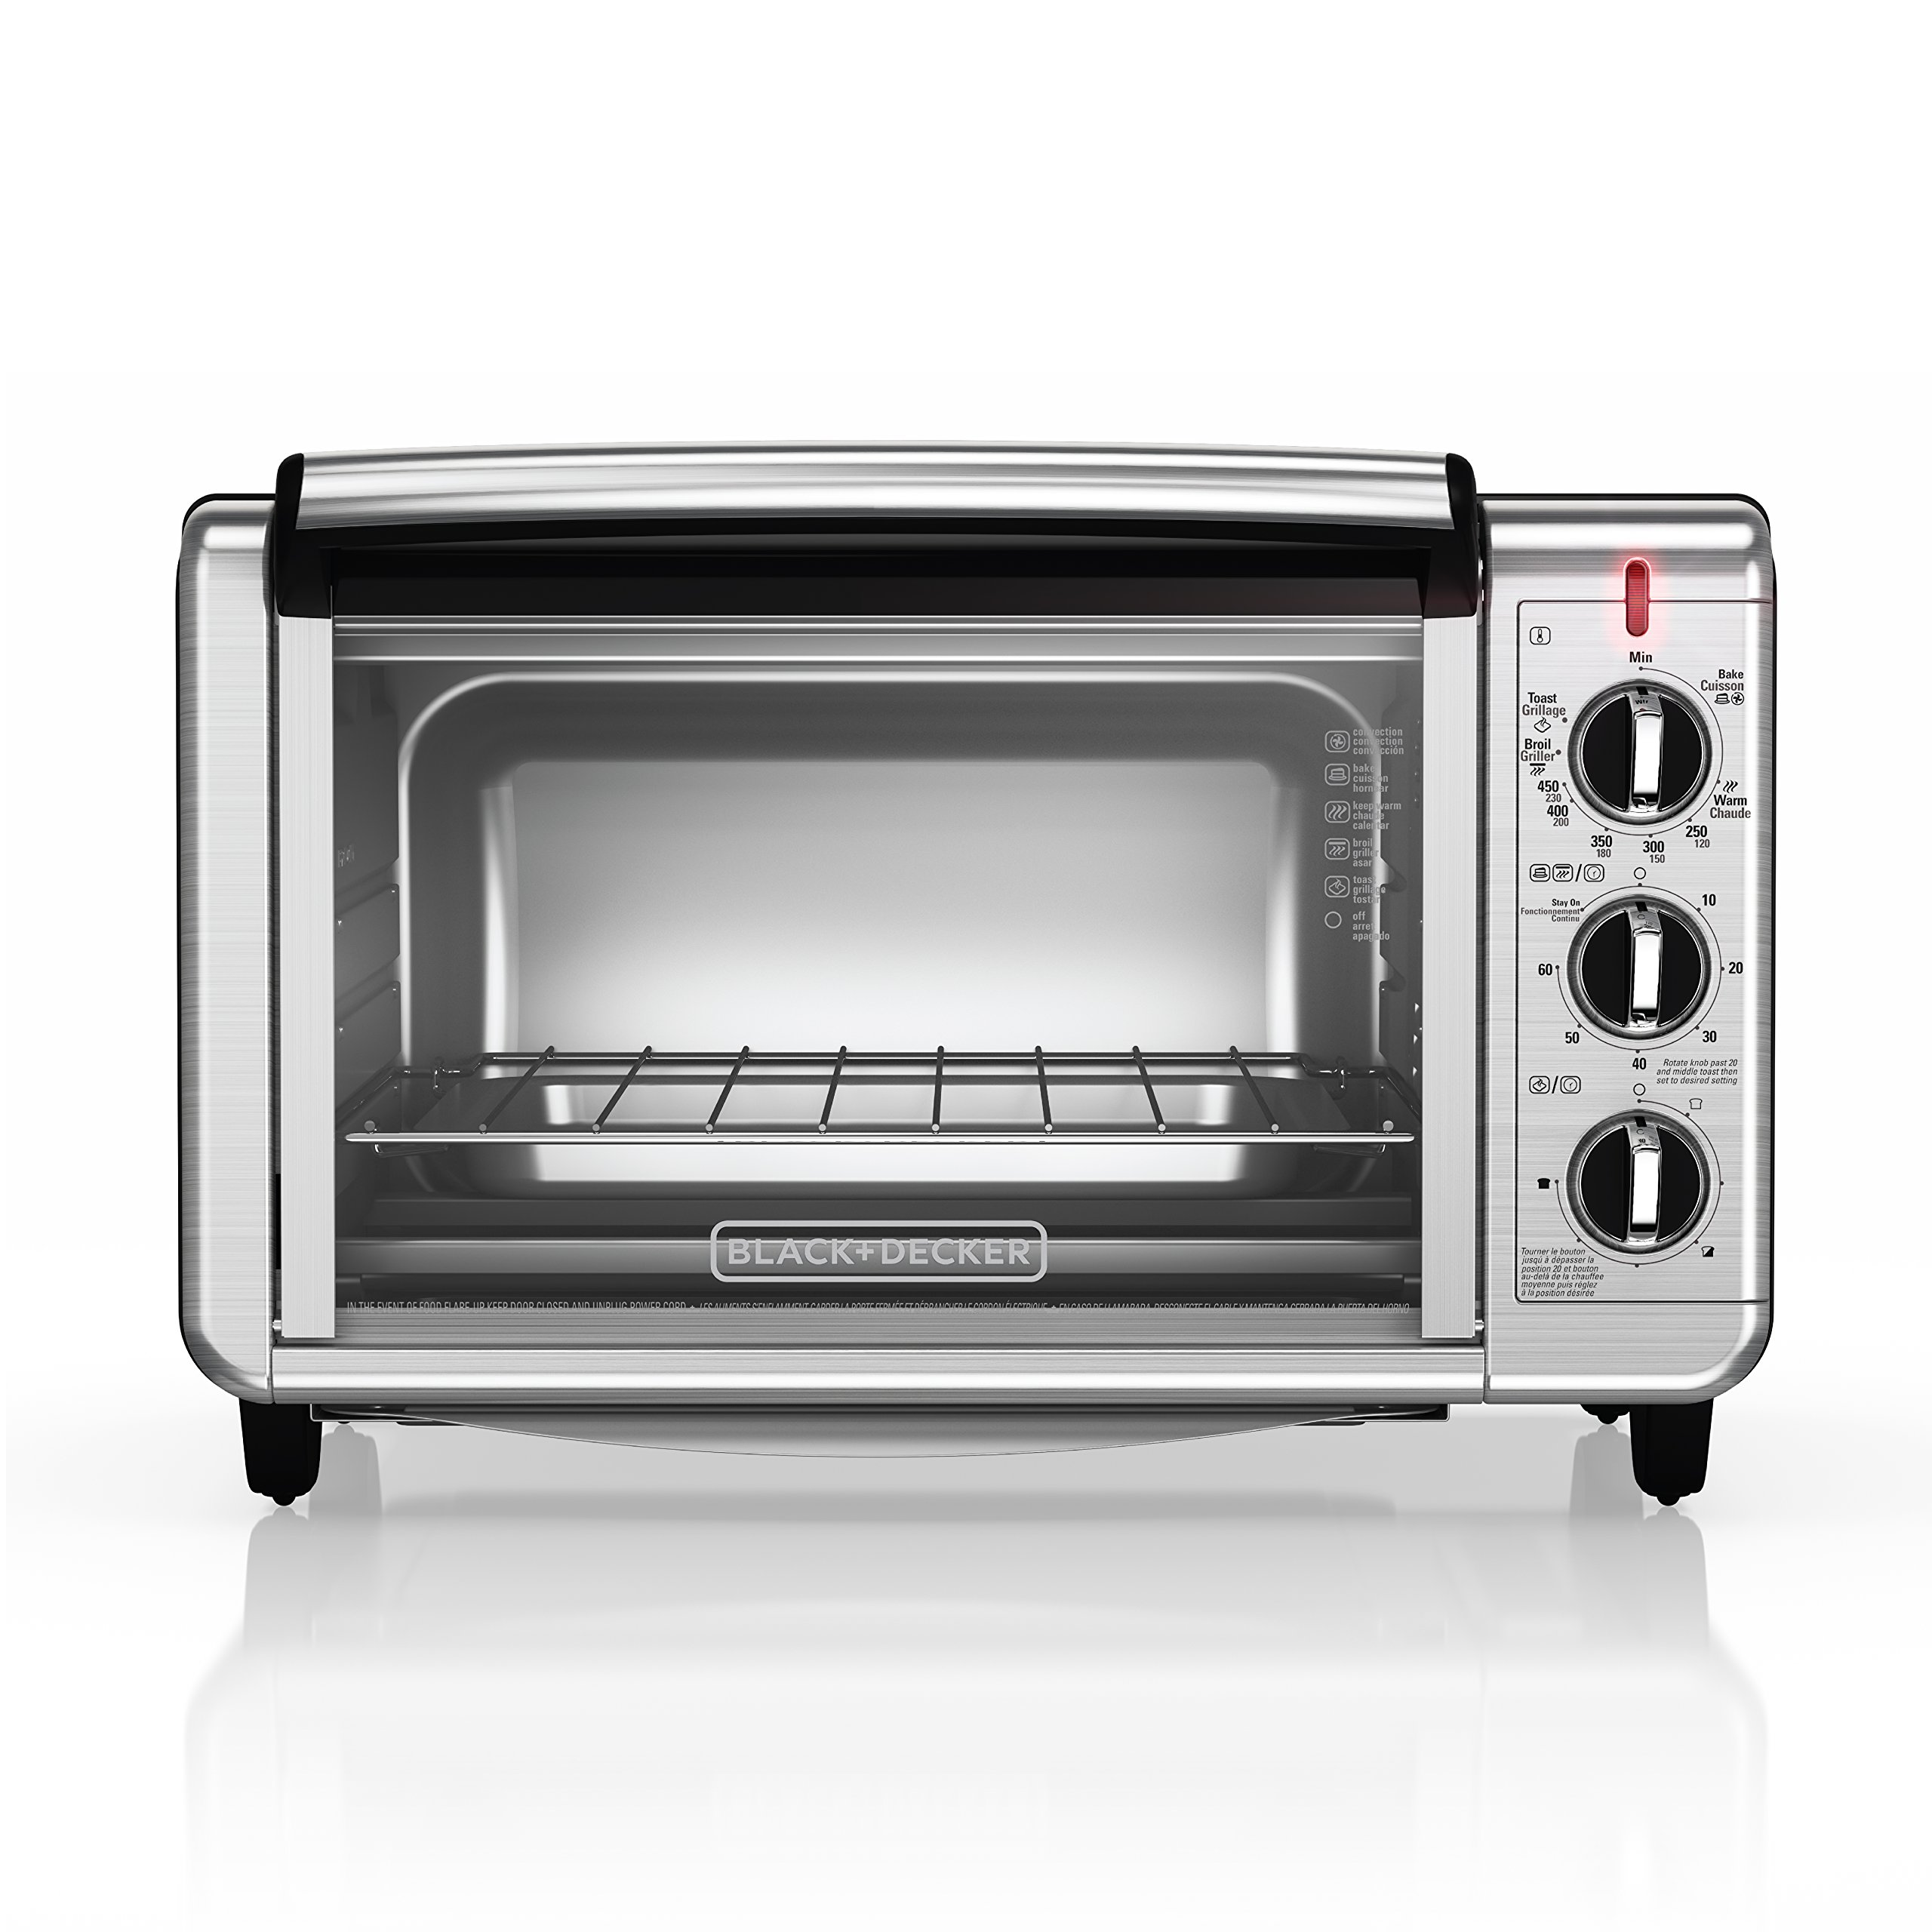 BLACK+DECKER TO3230SBD 6-Slice Convection Countertop Toaster Oven, Includes Bake Pan, Broil Rack & Toasting Rack, Stainless Steel Convection Toaster Oven by BLACK+DECKER